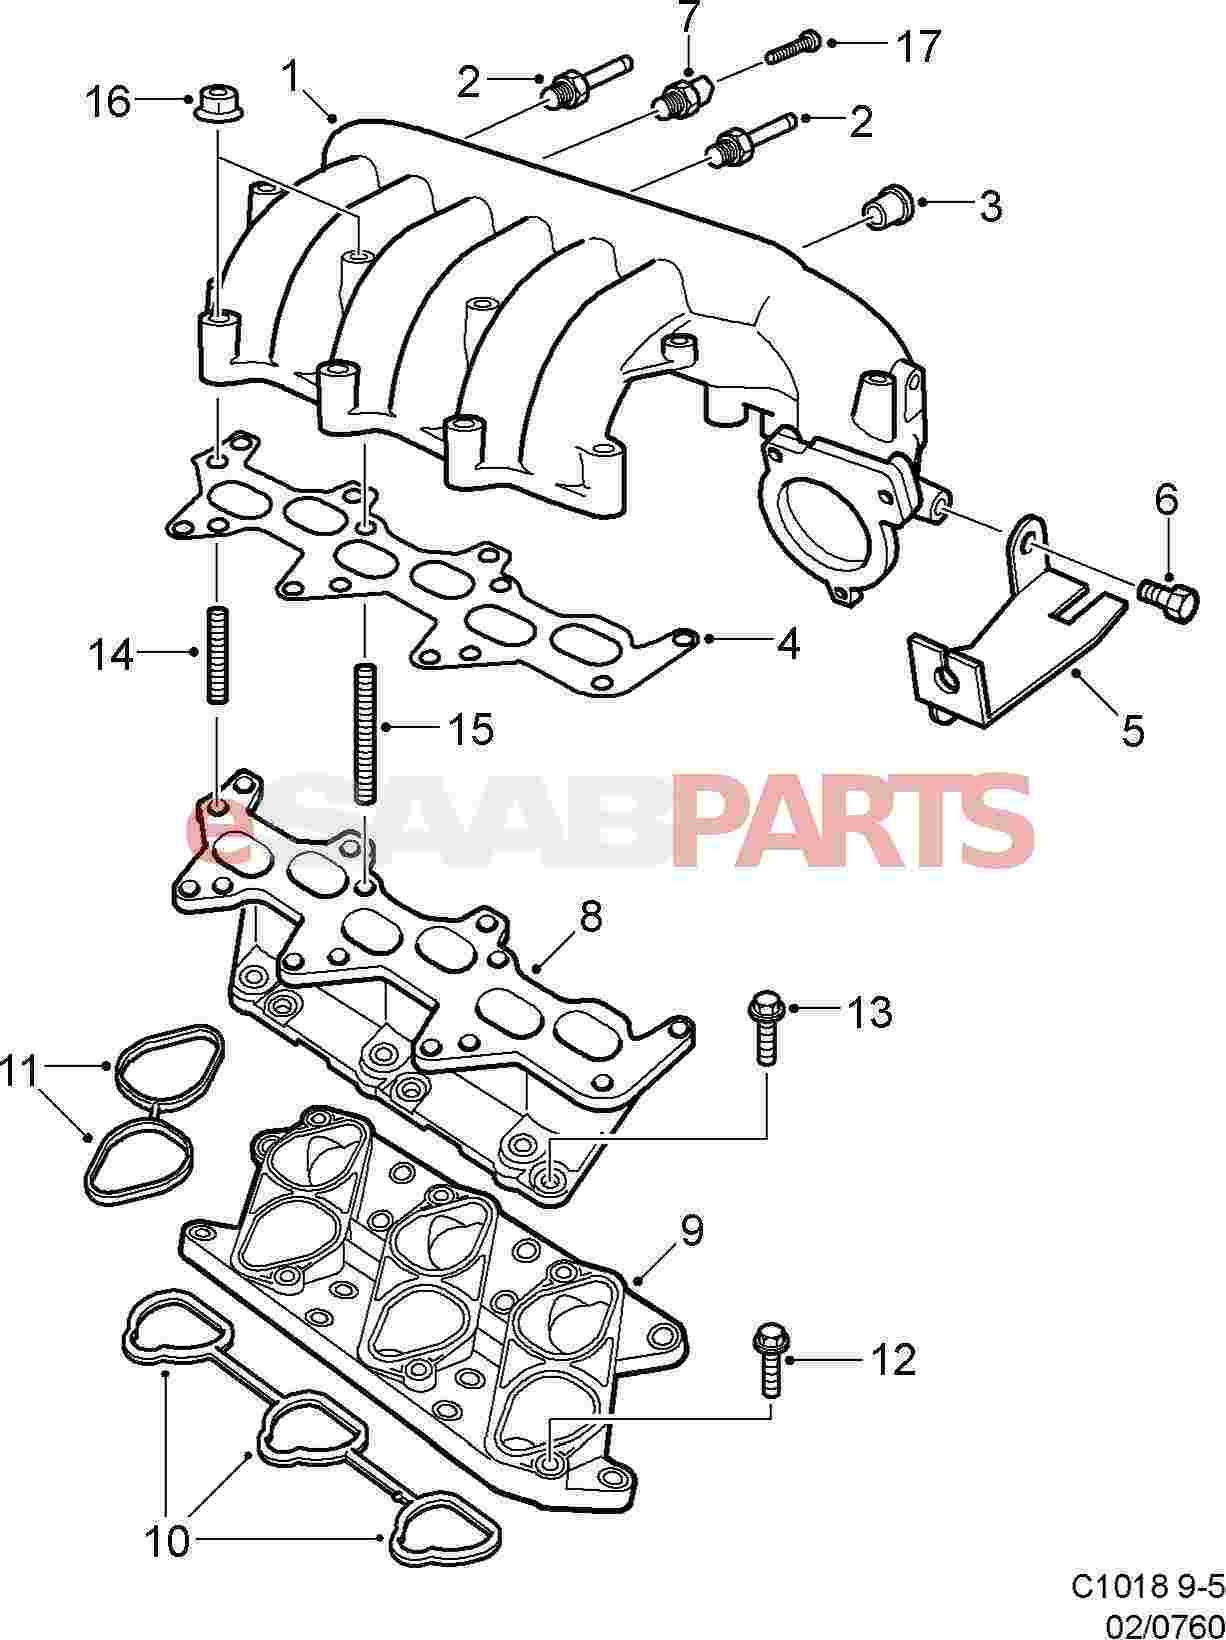 Audi S4 Engine Diagram